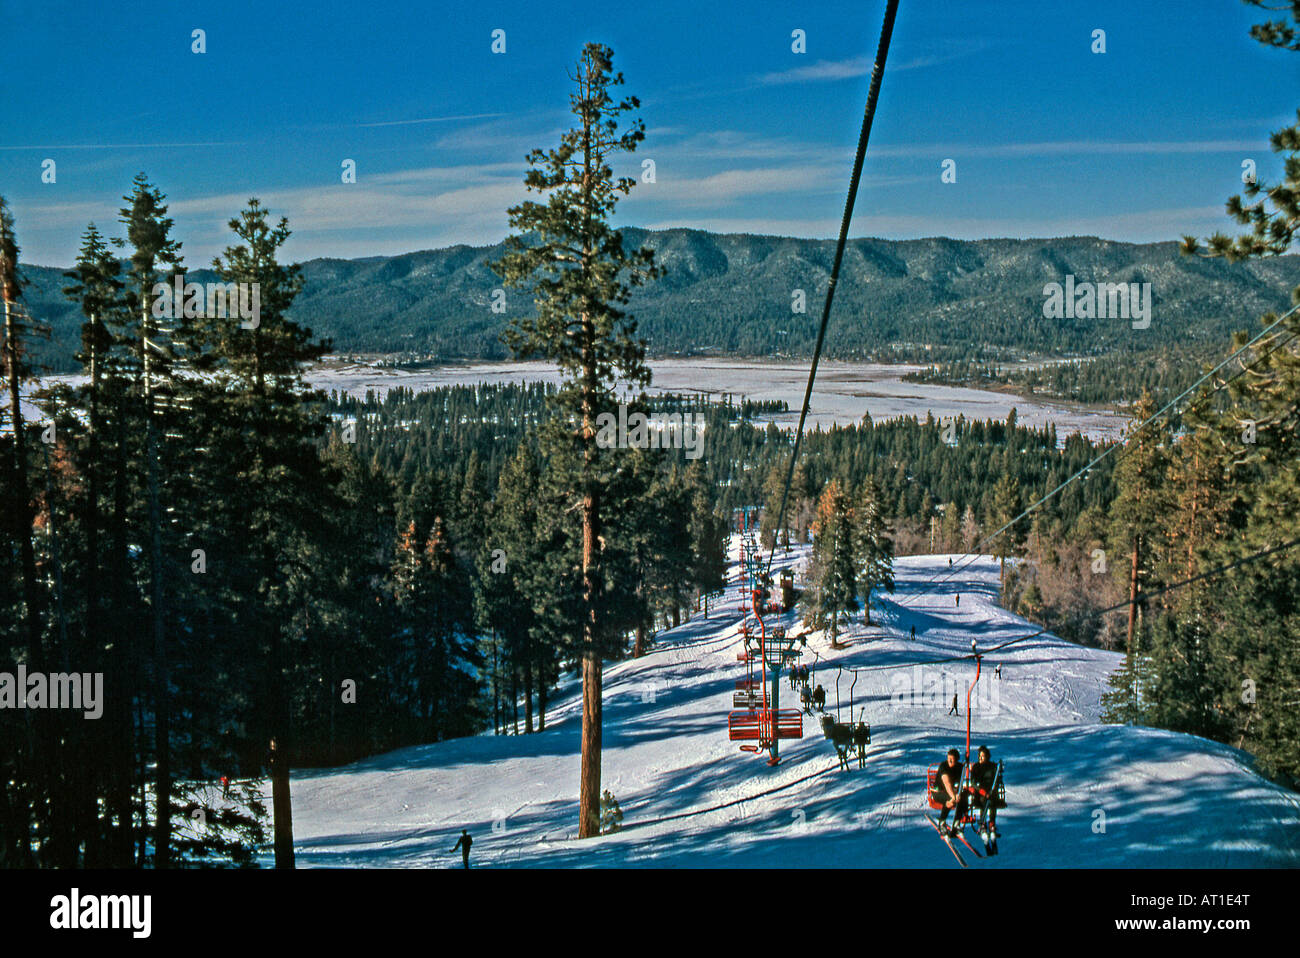 chair lift at big bear mountain ski resort, california usa stock